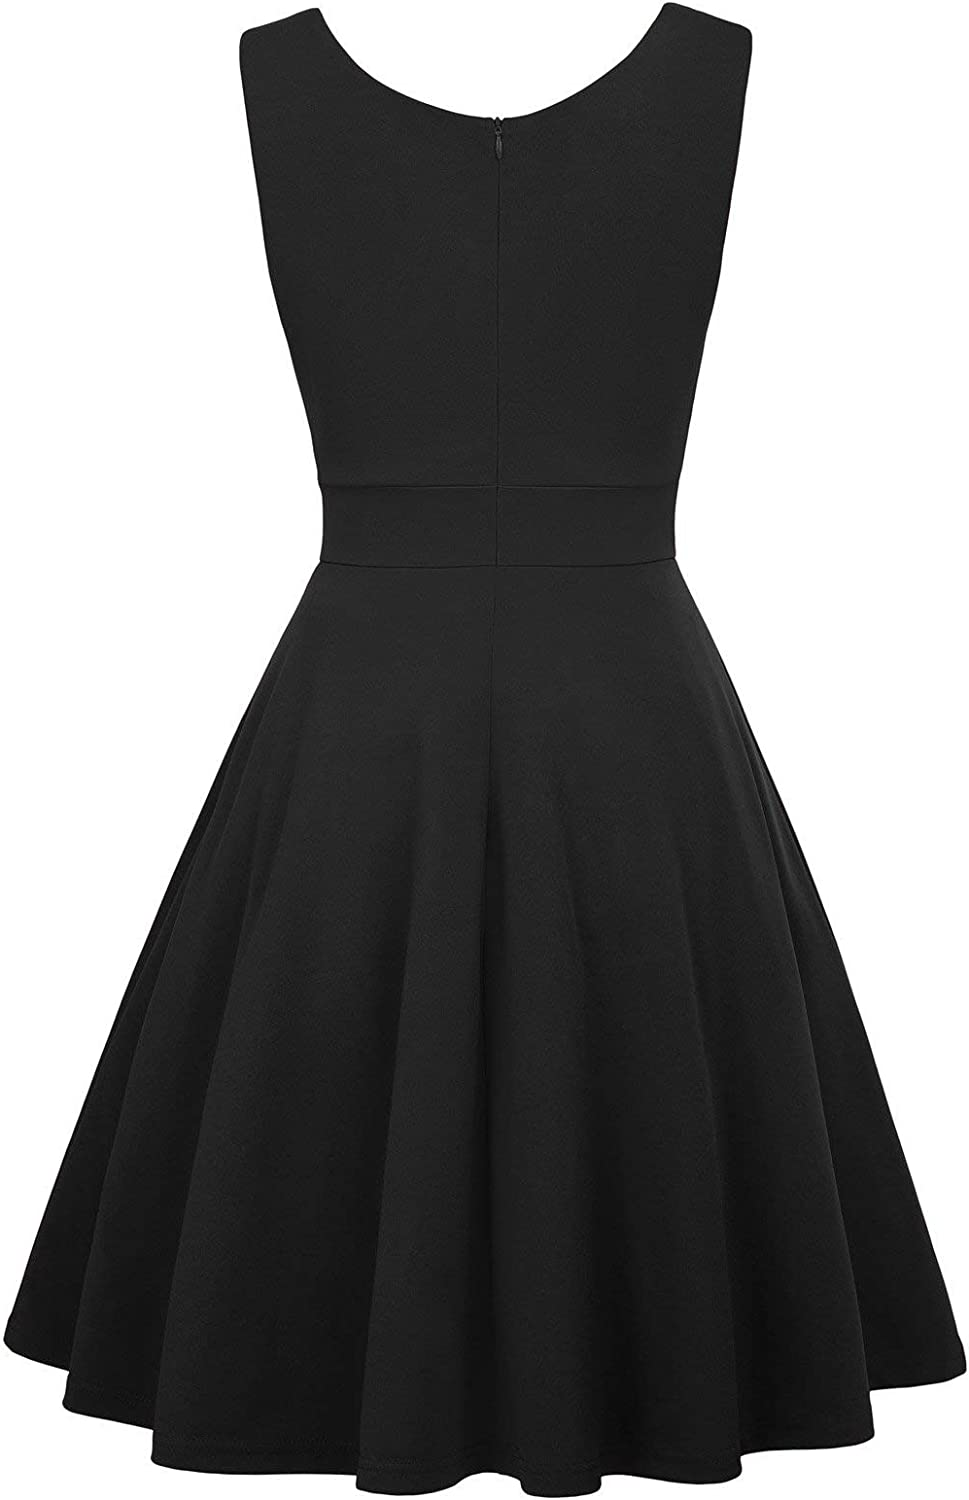 GRACE KARIN Women's Wrap V-Neck Bridesmaids Wedding Cocktail Party Dress : Clothing, Shoes & Jewelry